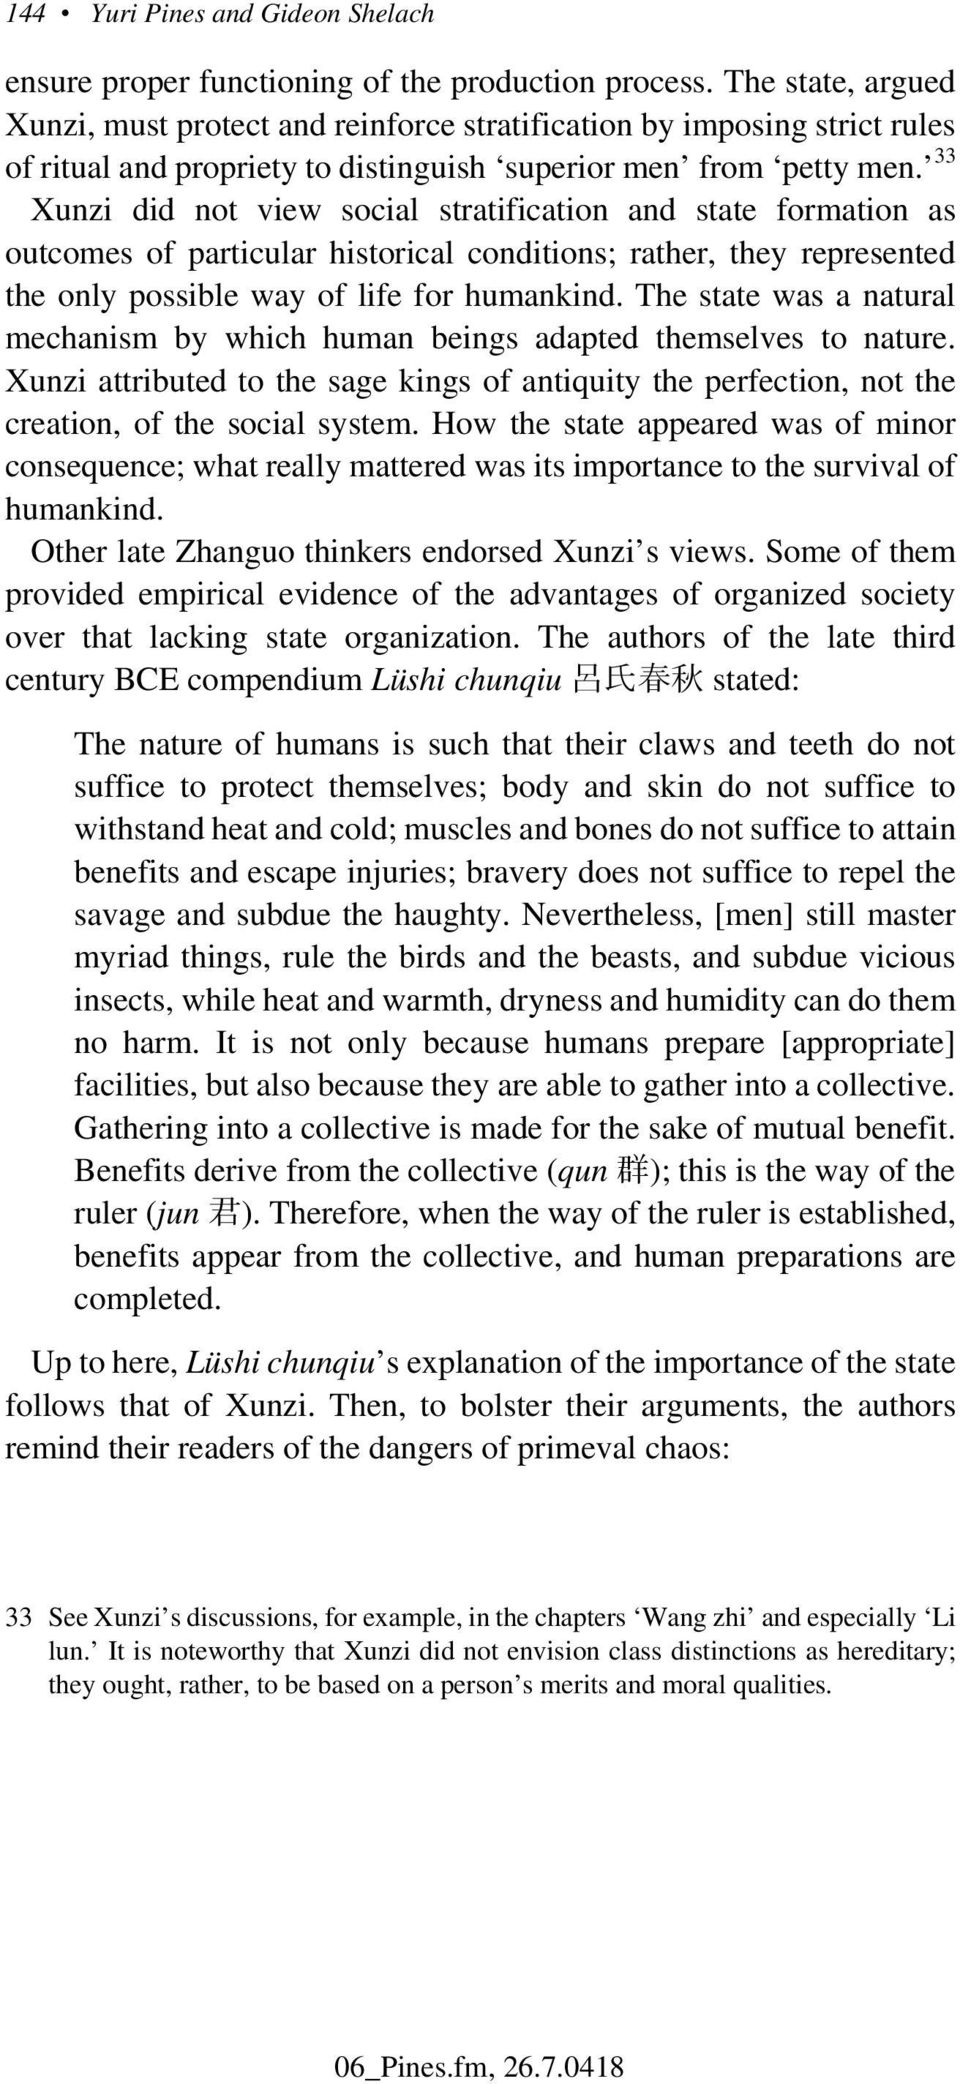 33 Xunzi did not view social stratification and state formation as outcomes of particular historical conditions; rather, they represented the only possible way of life for humankind.